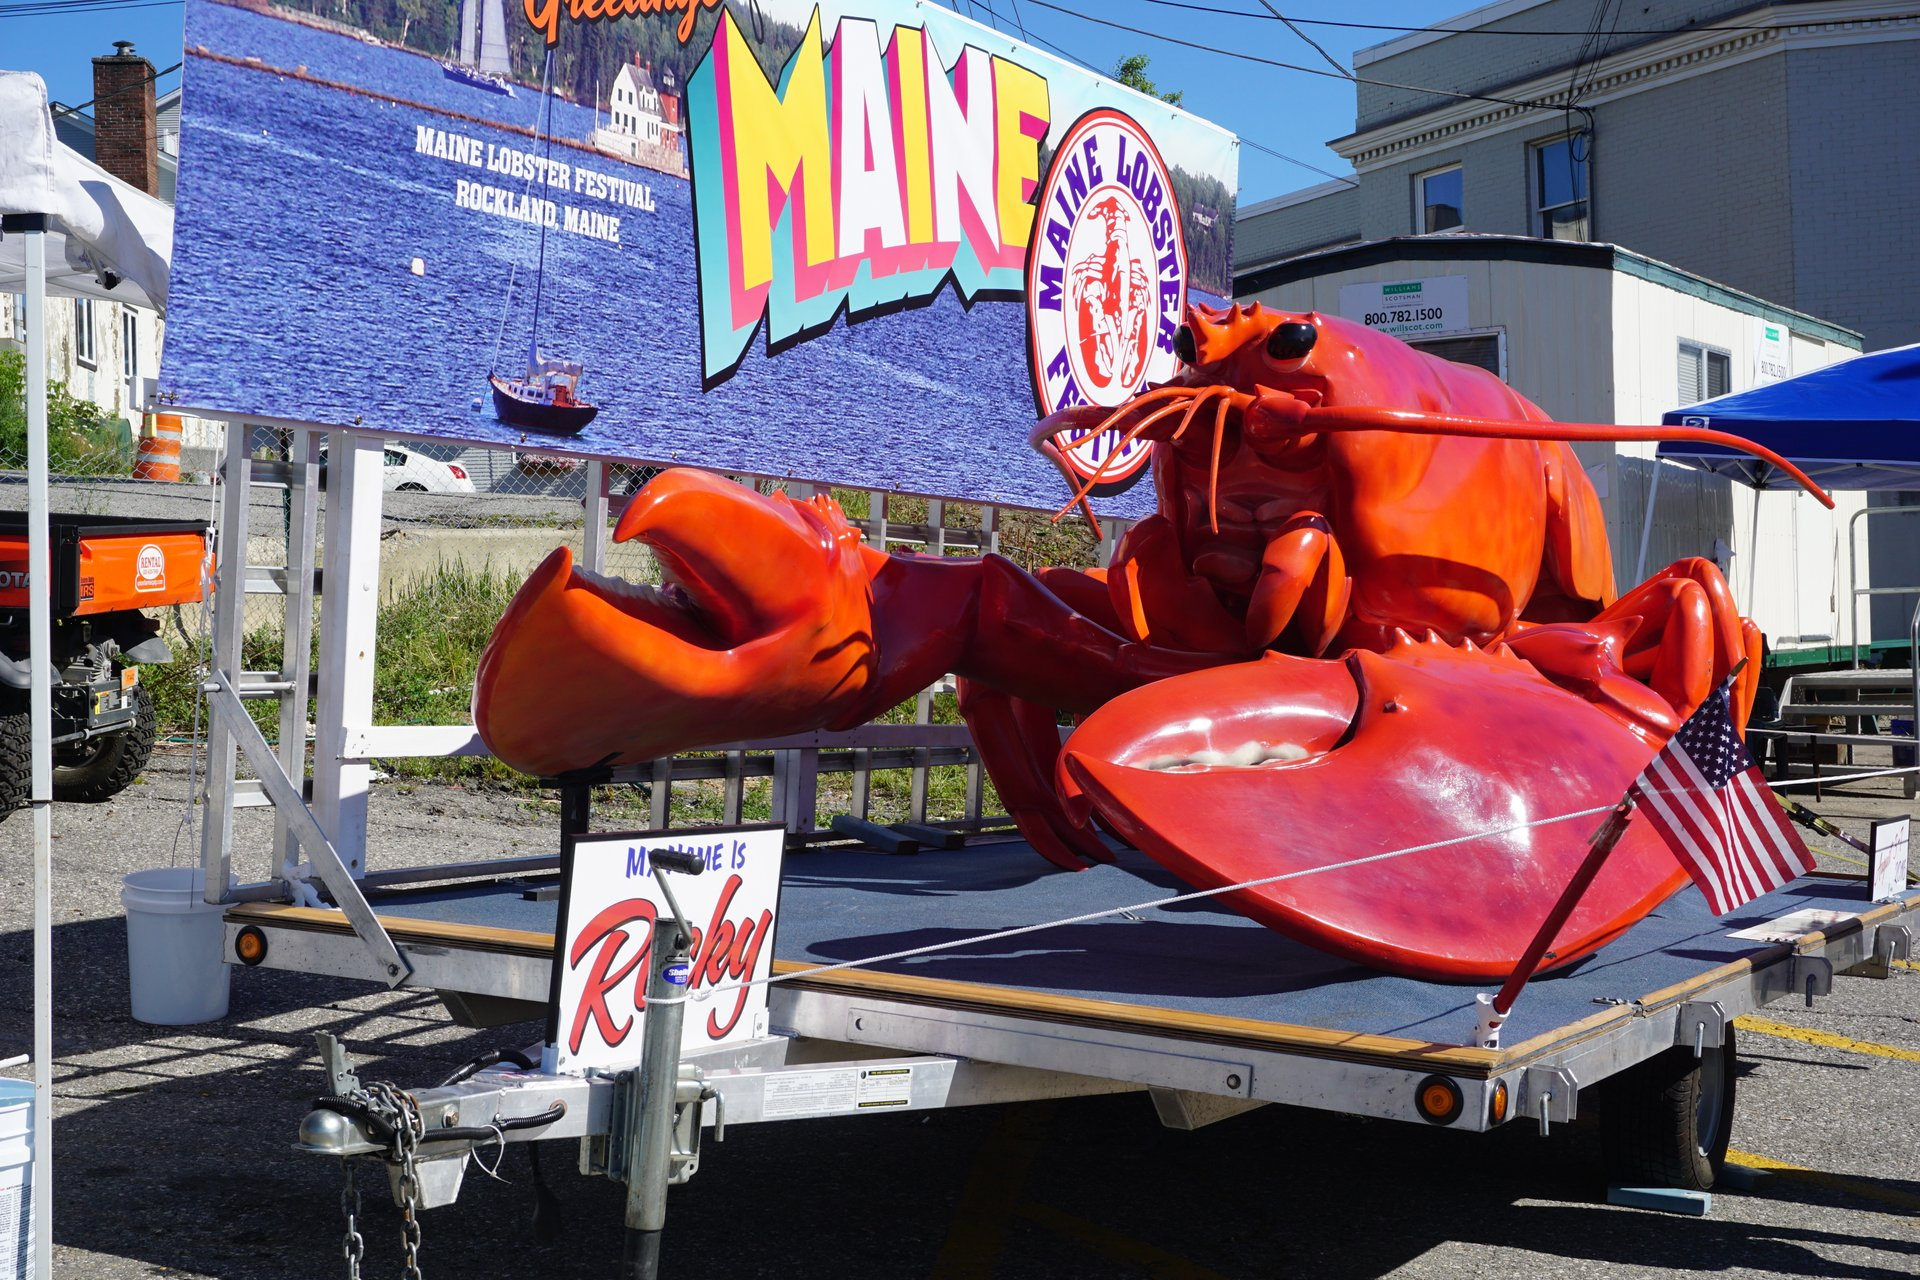 Maine Lobster Festival in Maine - Best Season 2020